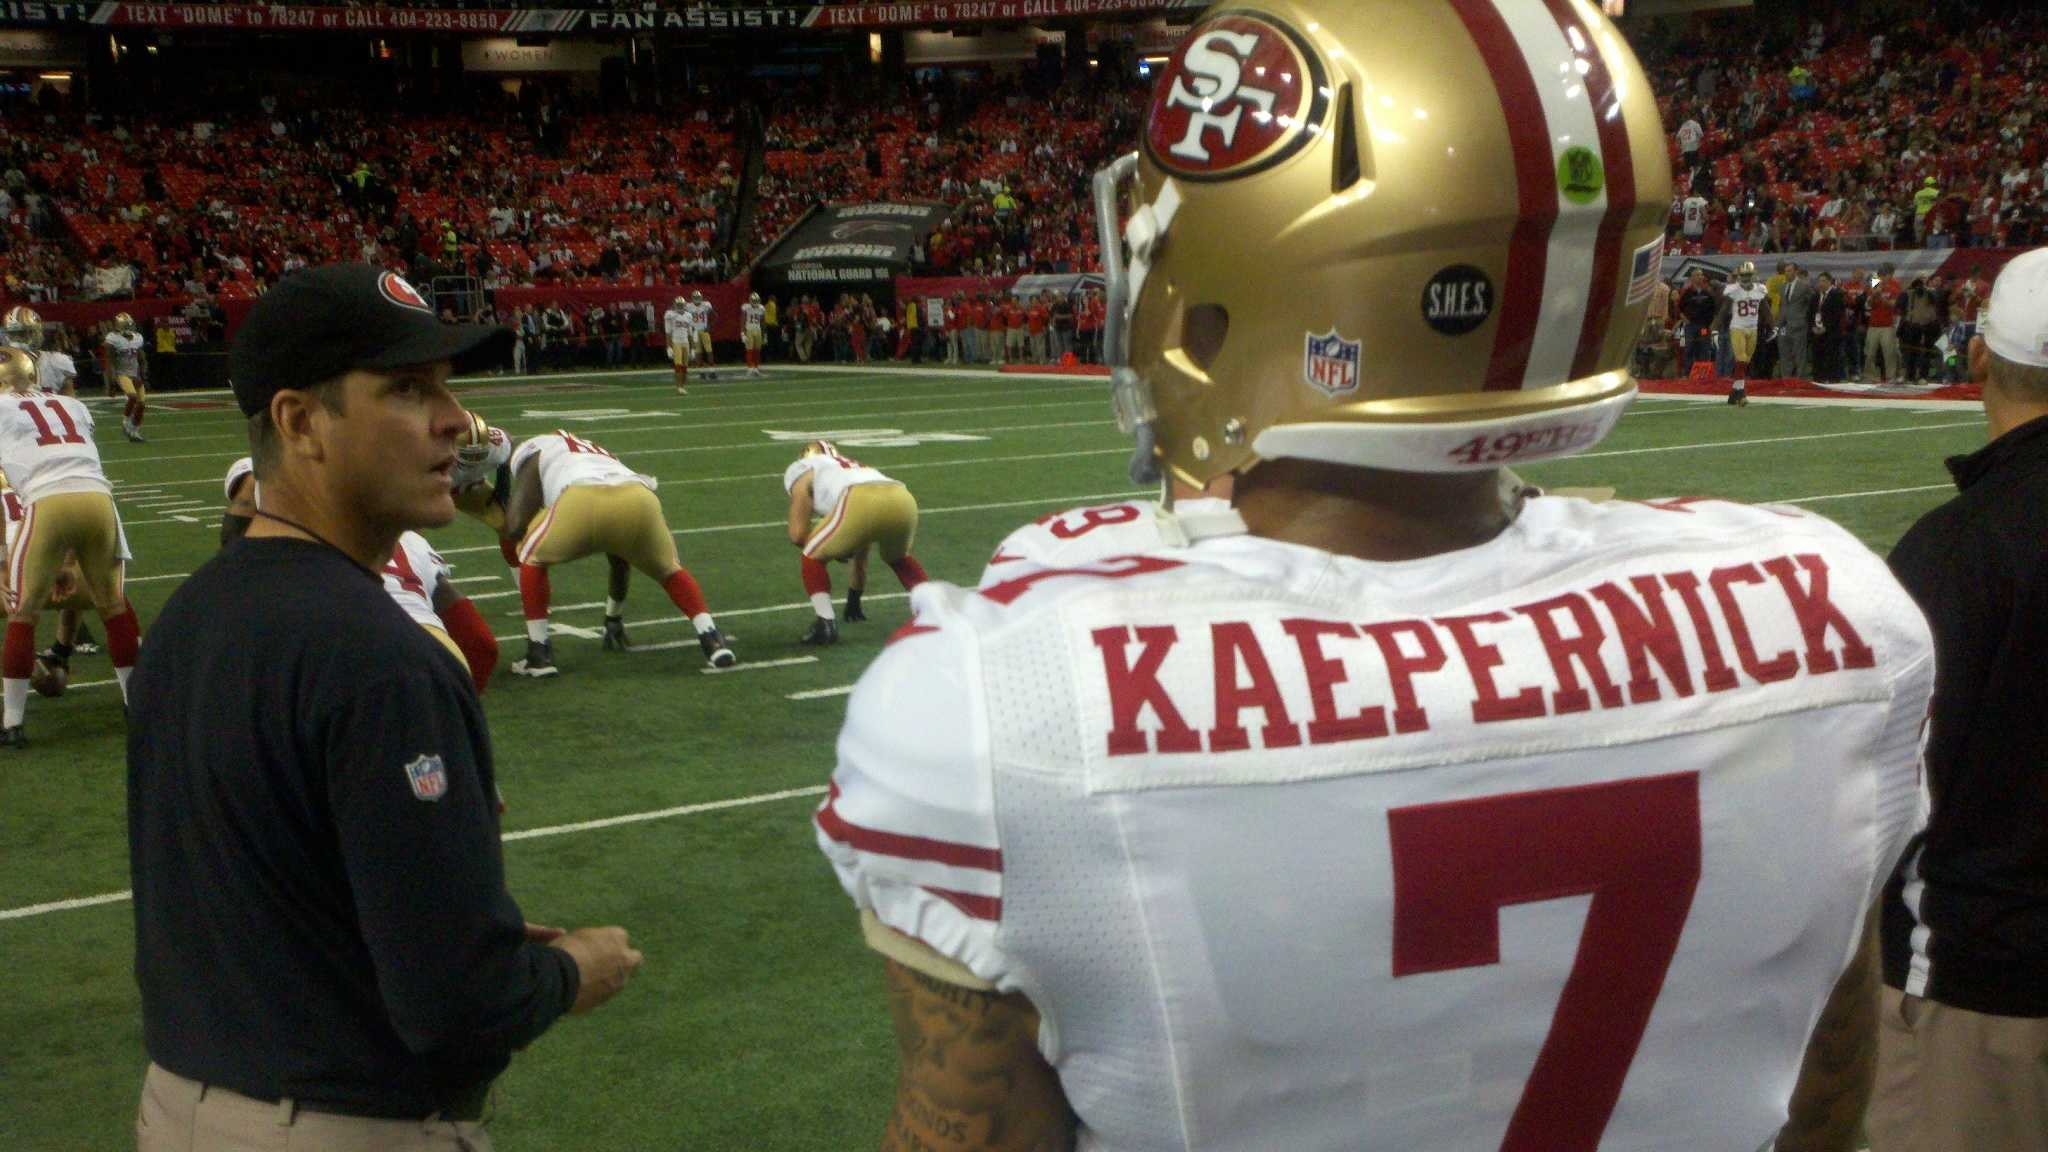 Colin Kaepernick and coach Jim Harbaugh before the NFC Championship game against the Atlanta Falcons. (January 20, 2013)